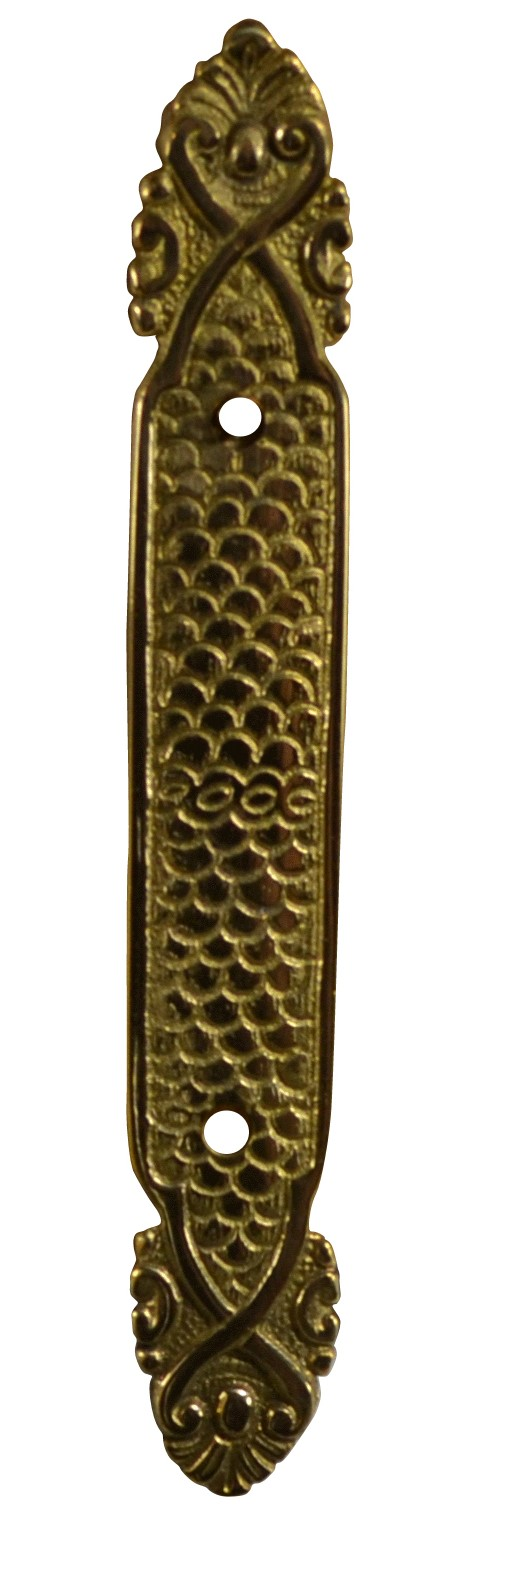 6 Inch Solid Brass Ornate Style Back Plate (Antique Brass Finish)